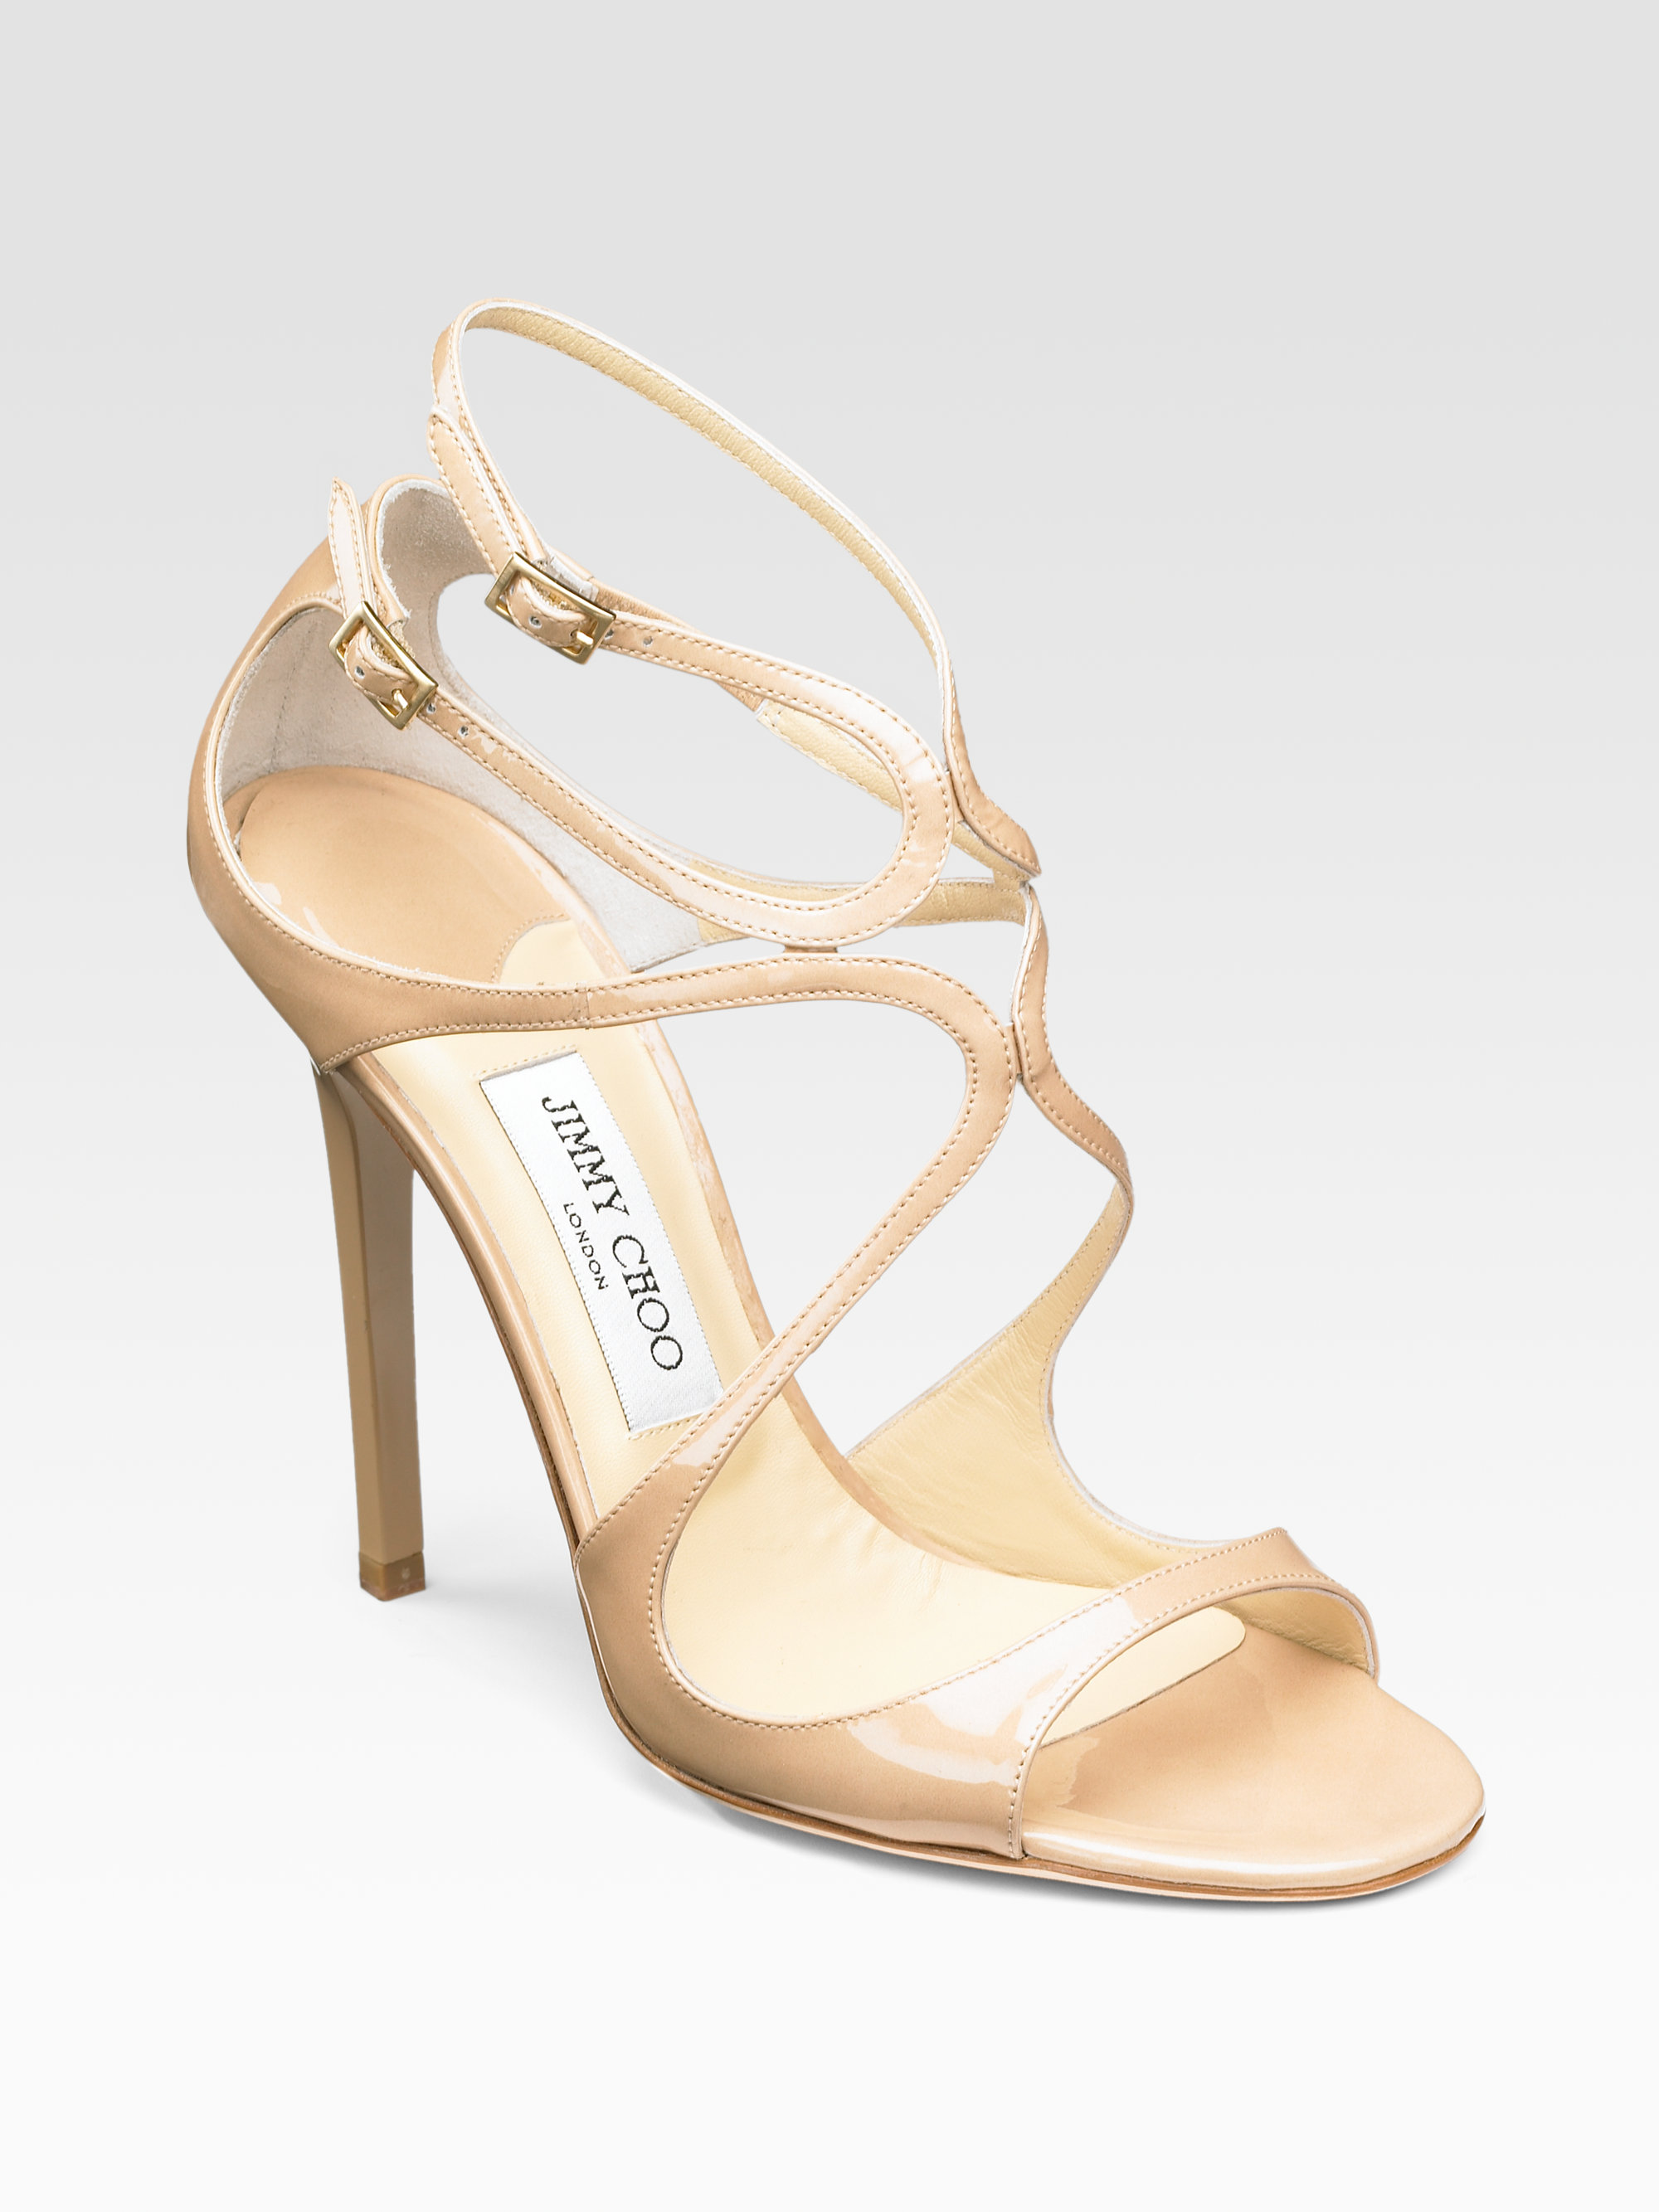 visit new Jimmy Choo Leather Patent Leather-Trimmed Sandals get to buy sale online great deals for sale cheap 2014 new wmNSPjdcQe